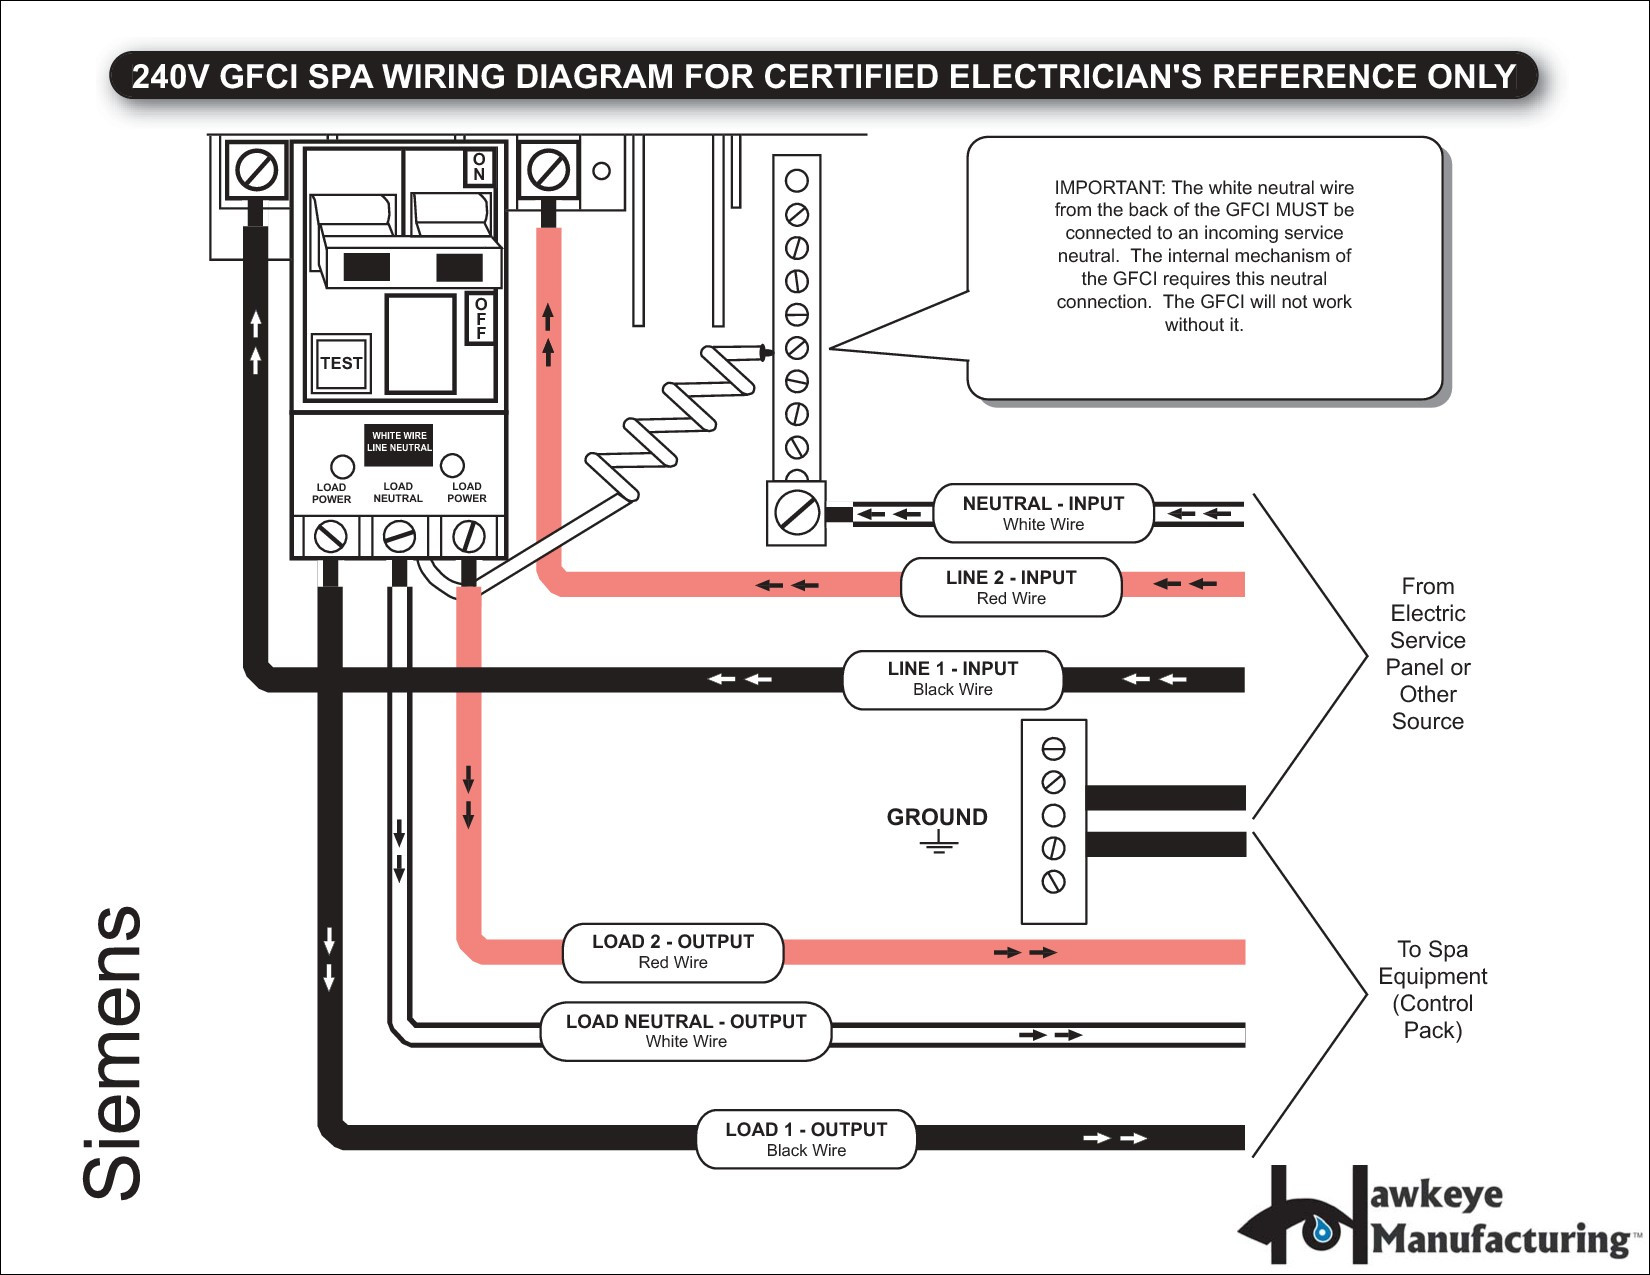 gfci receptacle wiring diagram Collection-Wiring Diagram Gfci Outlet Valid 2 Pole Gfci Breaker Wiring Diagram Fantastic Wiring Diagram 12-b